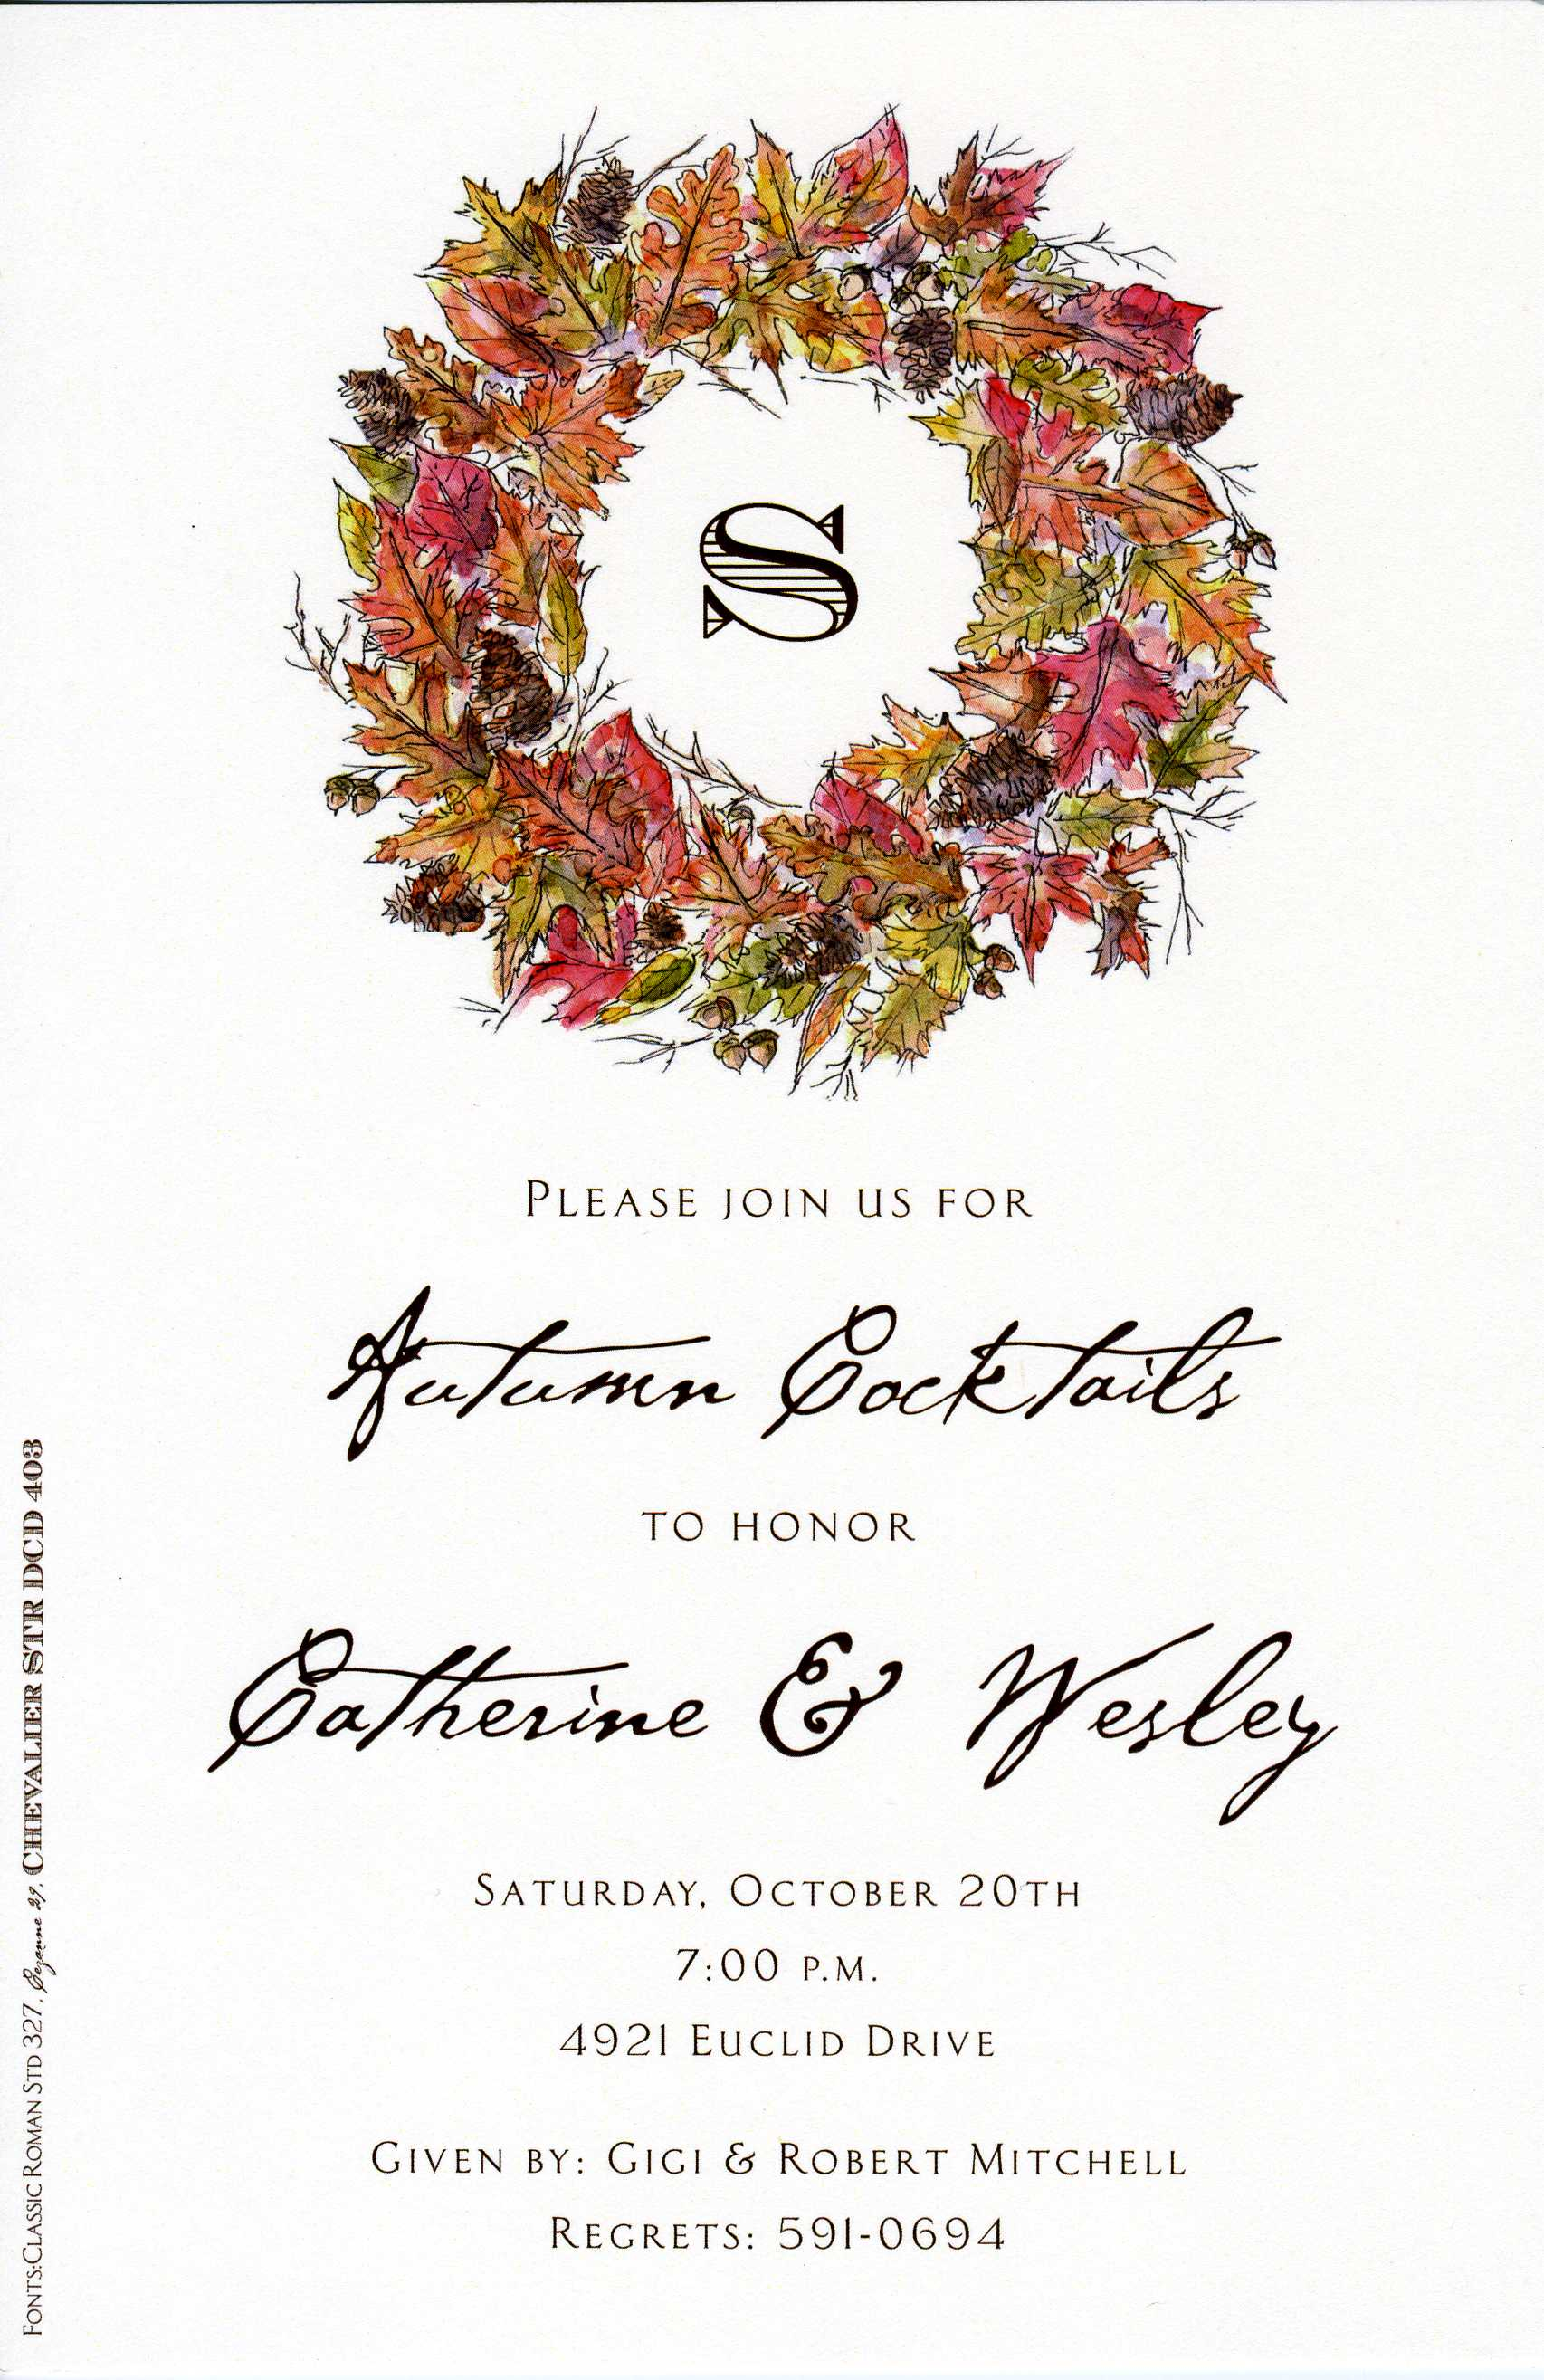 Rustic Wreath - An elegant wreath in lovely fall colors frames an area for your monogram in this invitation that is perfect for any occasion this season! Includes ivory envelope.